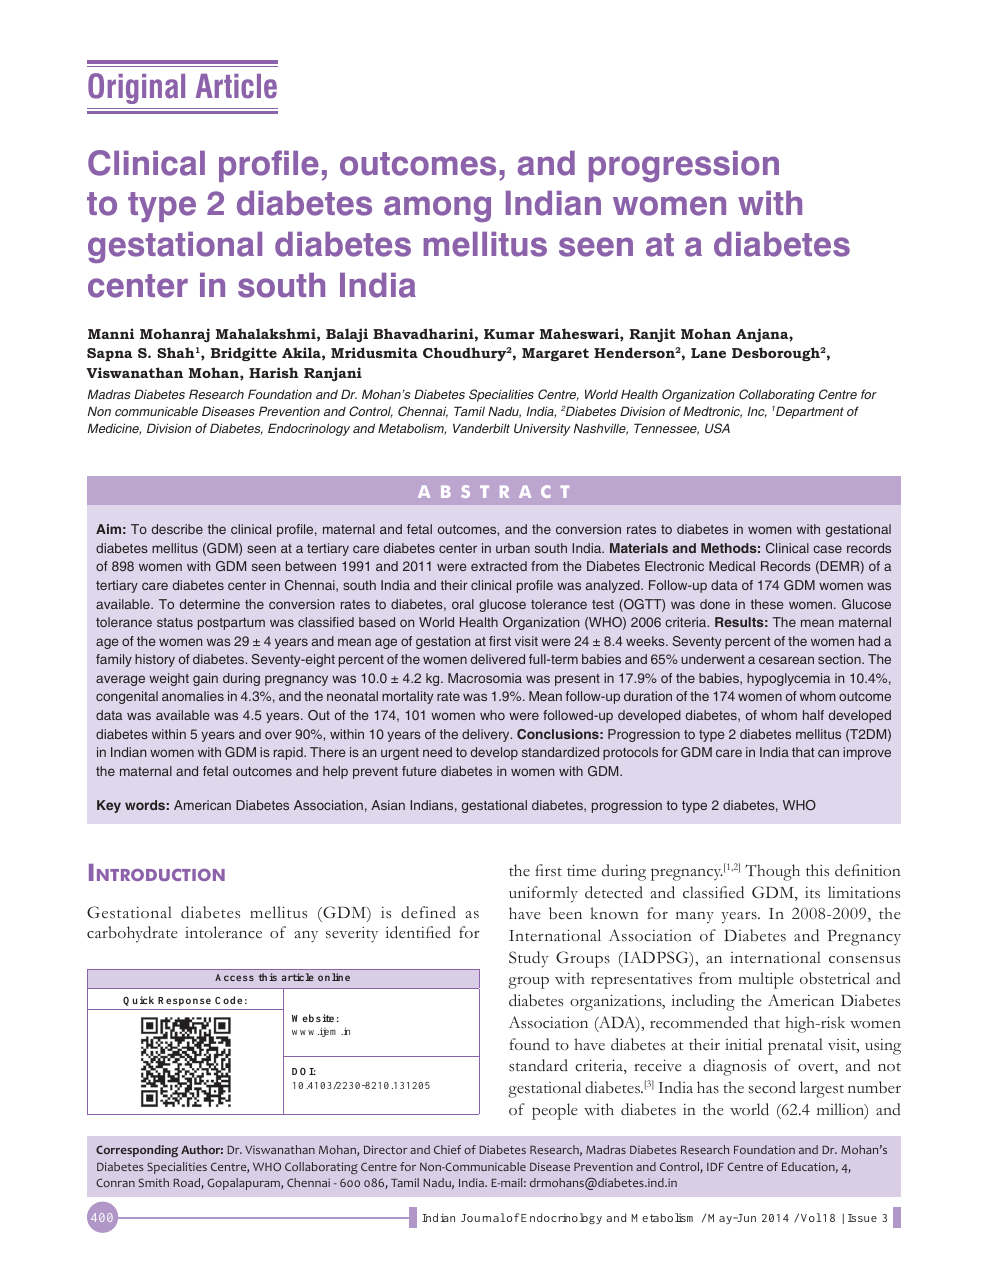 Clinical Profile Outcomes And Progression To Type 2 Diabetes